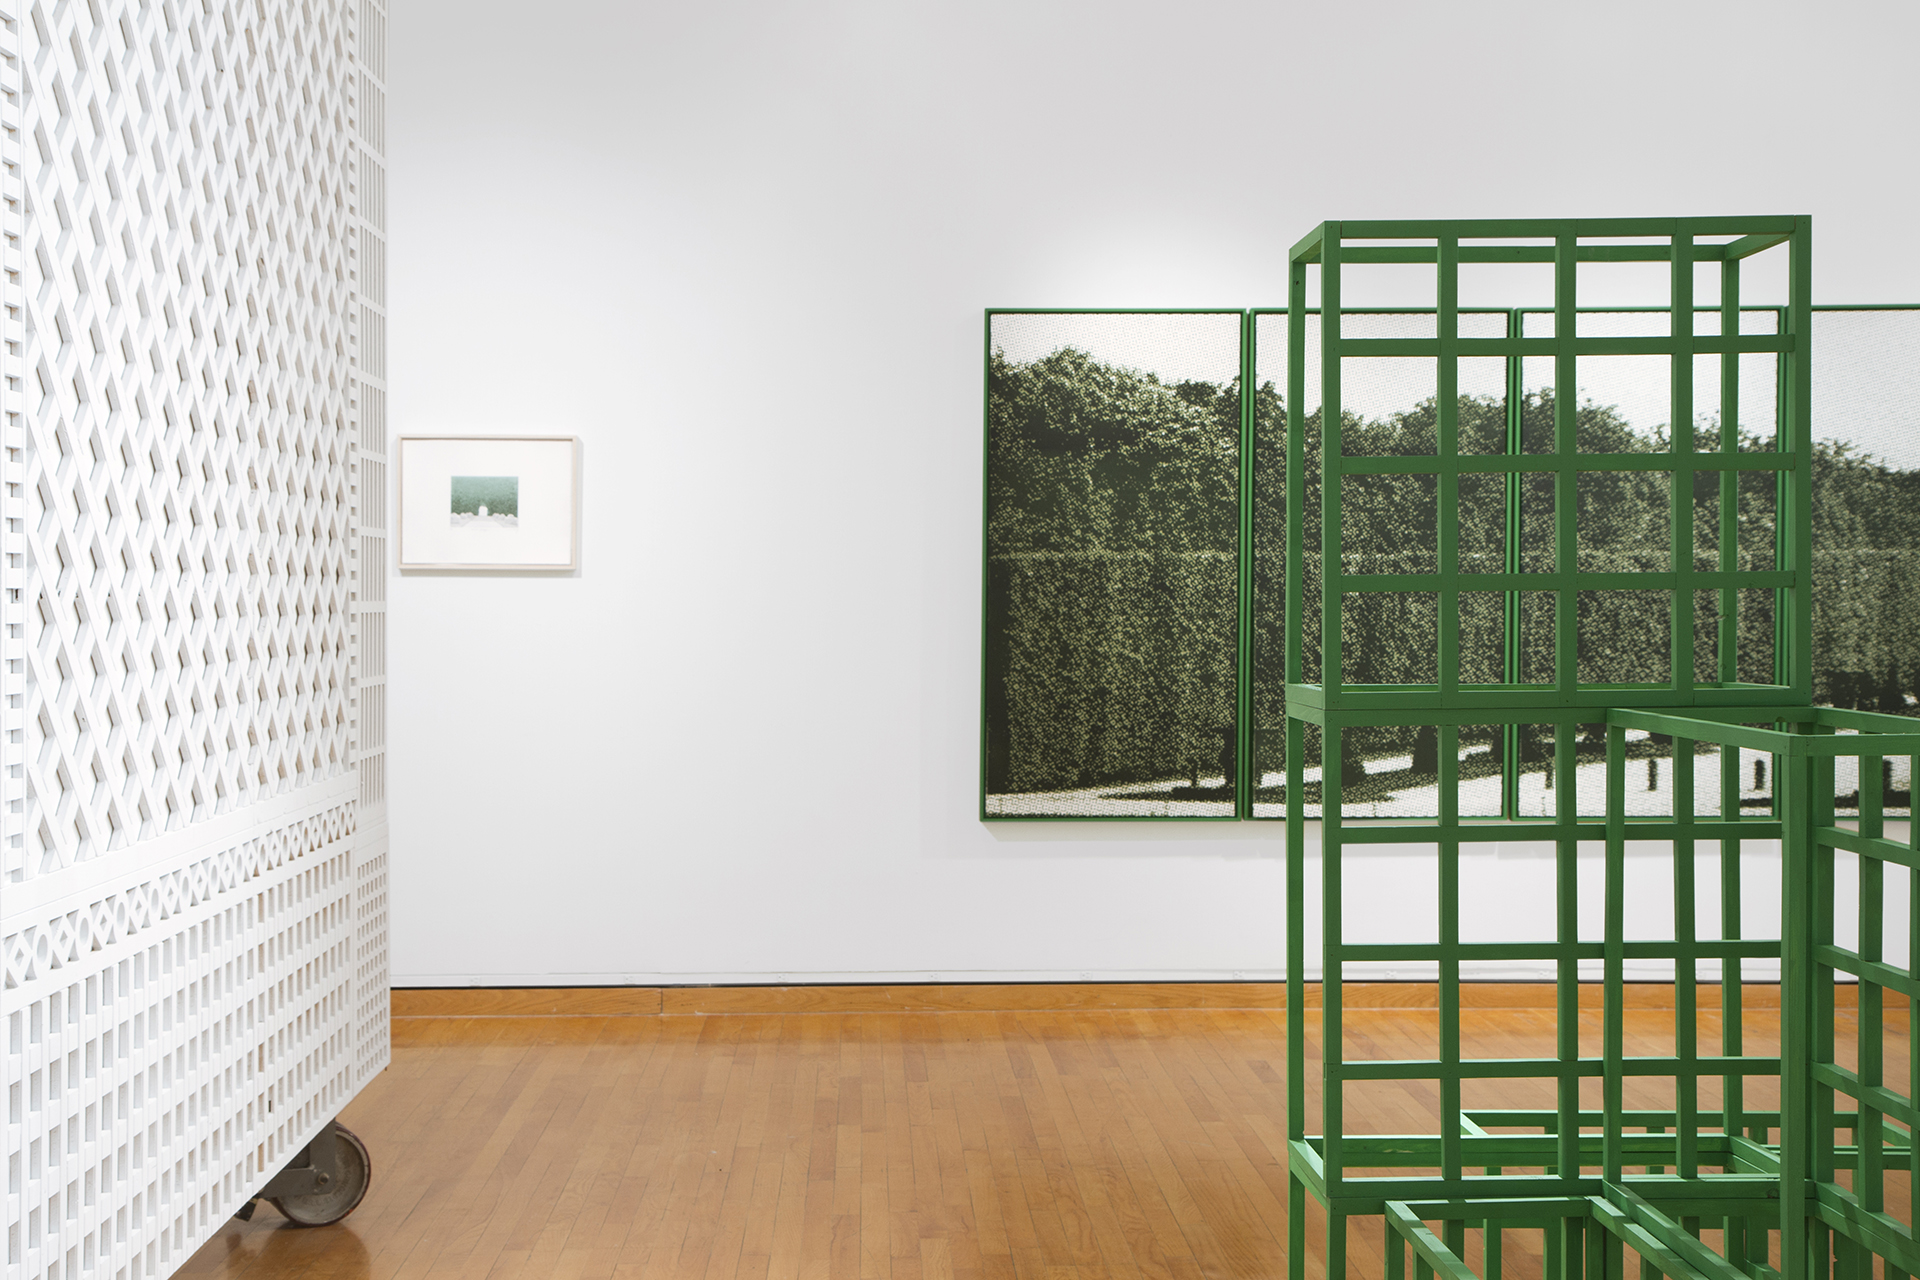 Elizabeth Corkery, Nowhere is There a Garden (installation view), 2013, Wood, screenprint on paper, etching on paper, CNC milled plywood.